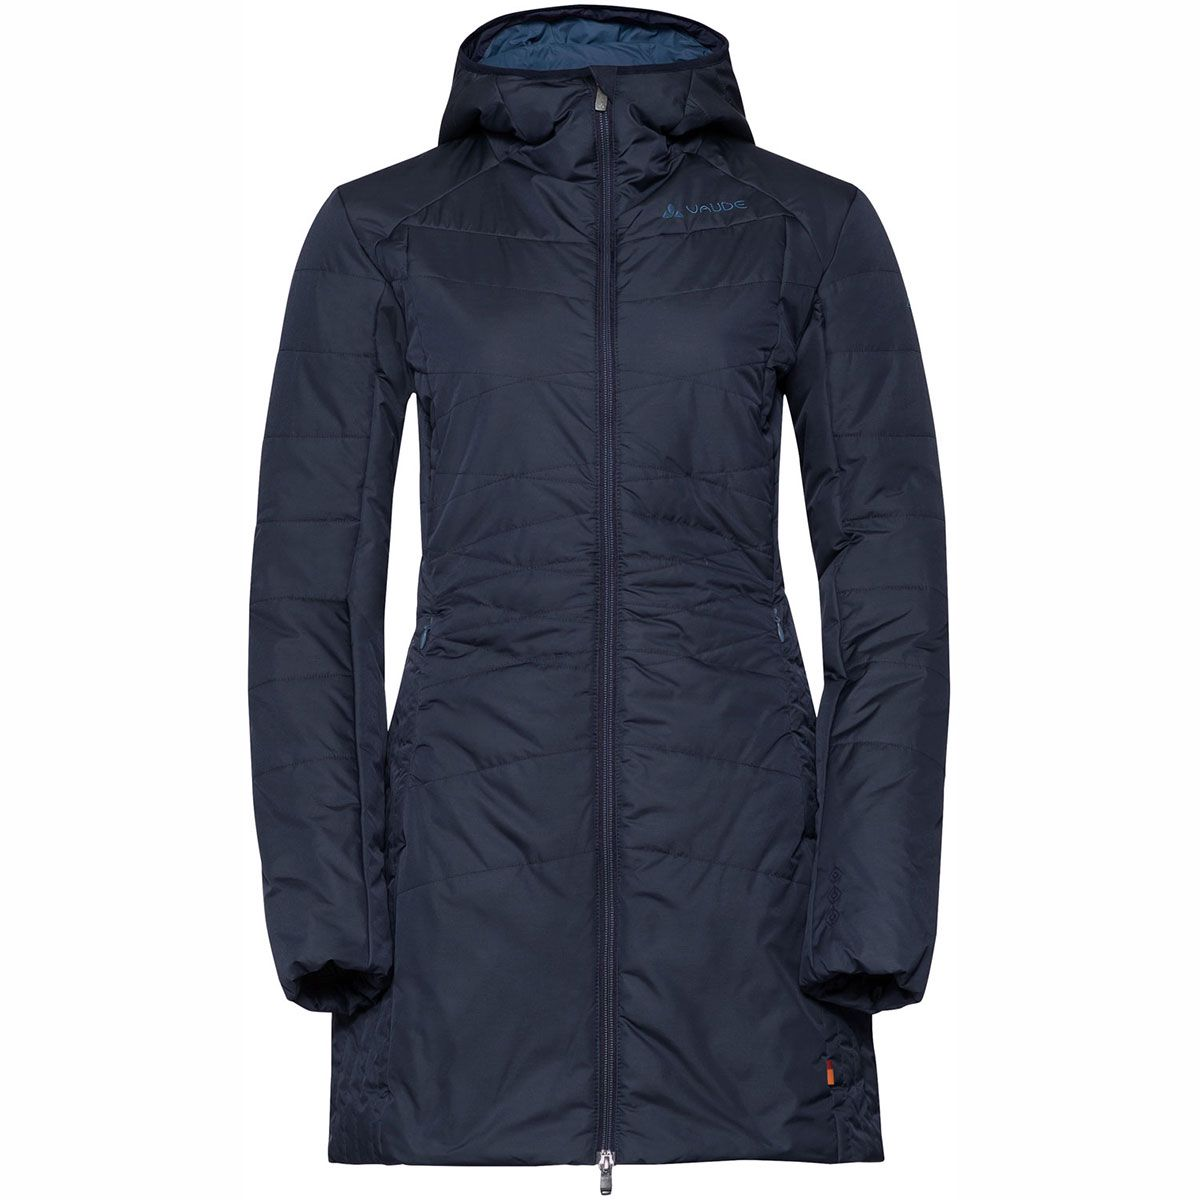 Vaude Damen Skomer Winter Mantel (Größe XL, Blau) | Winterjacken > Damen